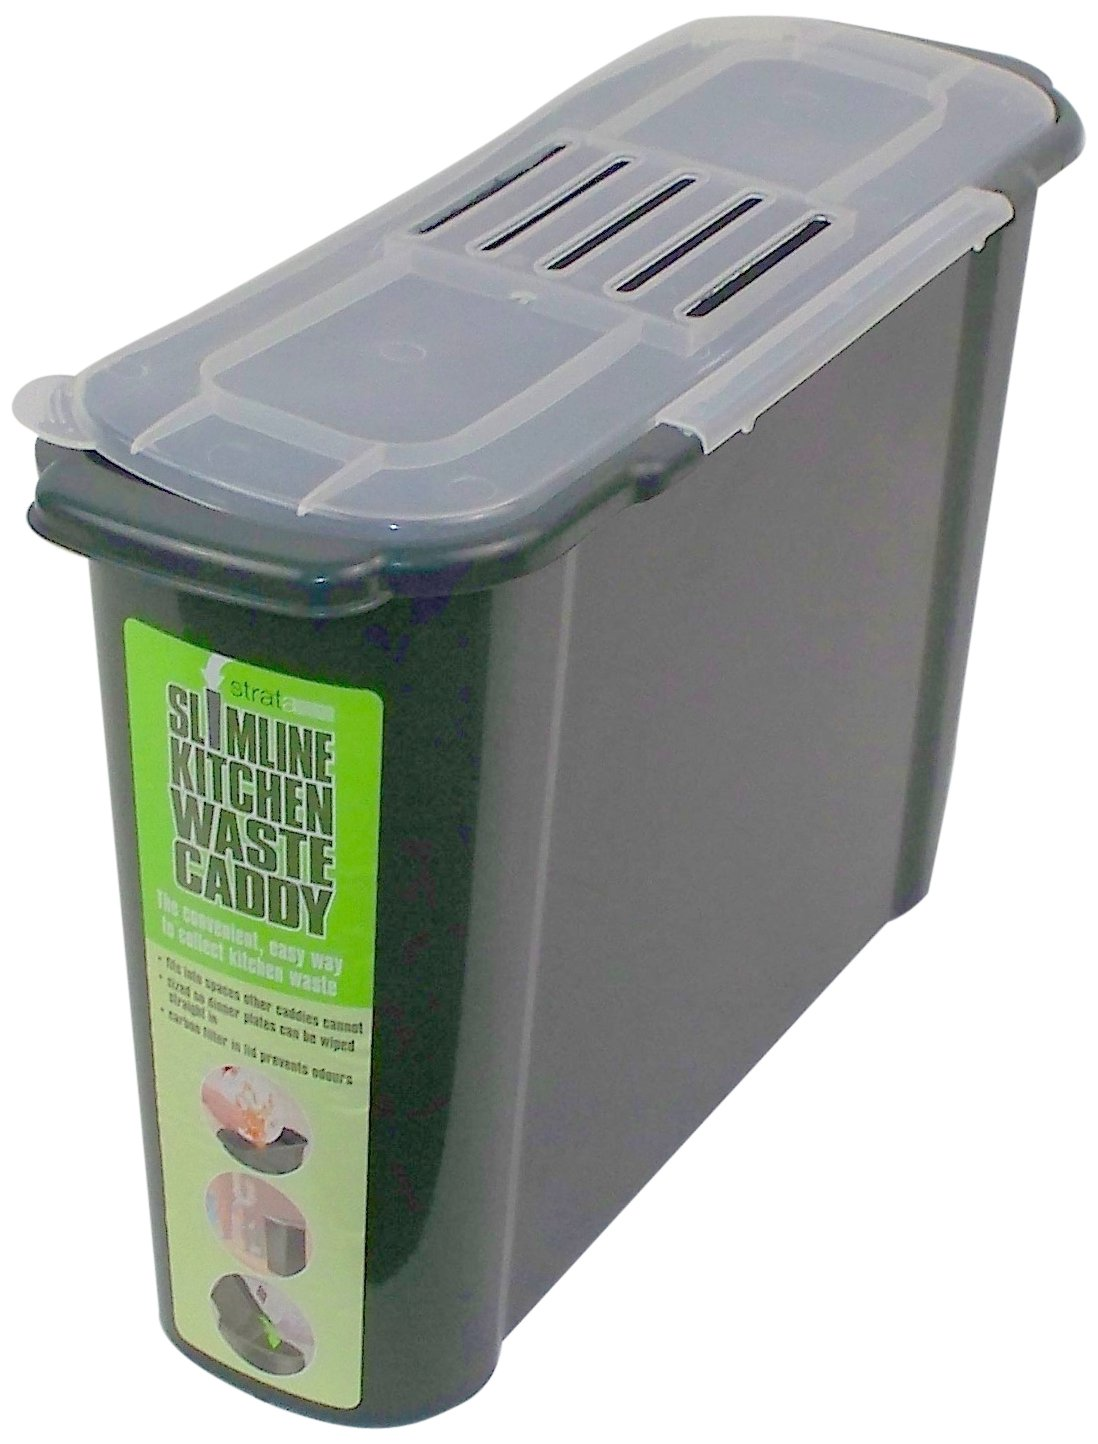 Amazon.com : Bosmere K779 Slim Kitchen Recycled Plastic Compost ...